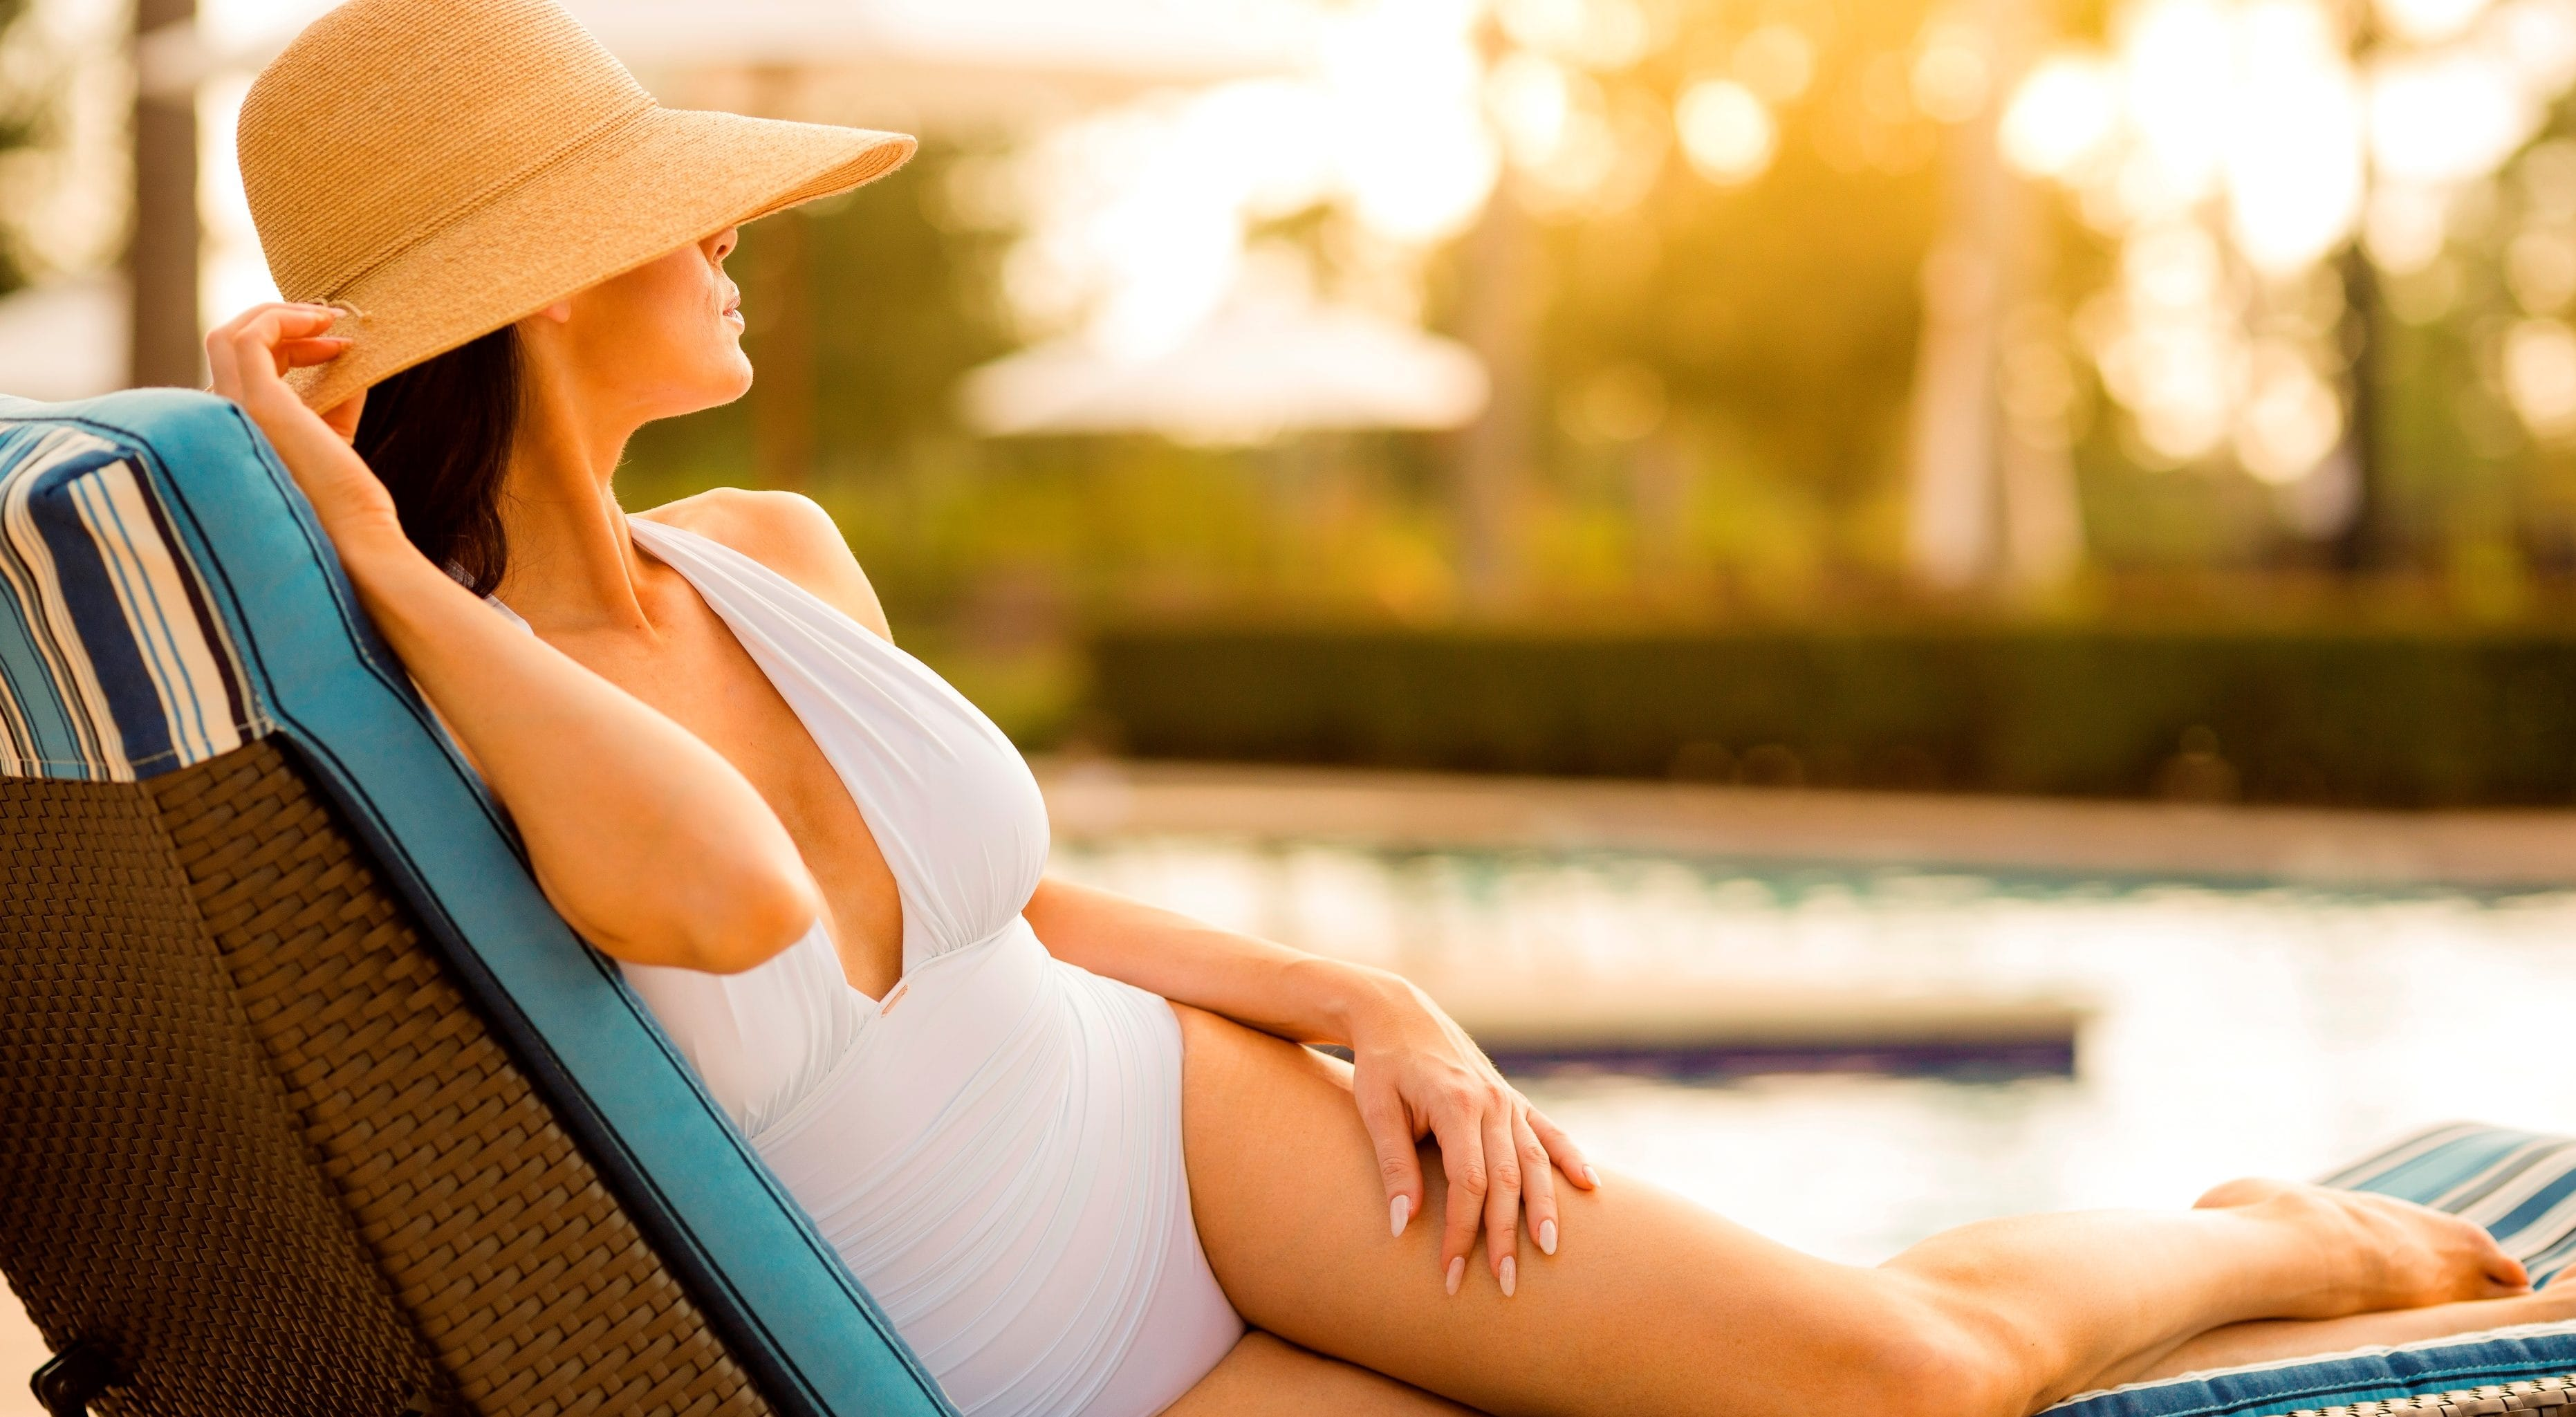 Lady relaxing by cabana pool